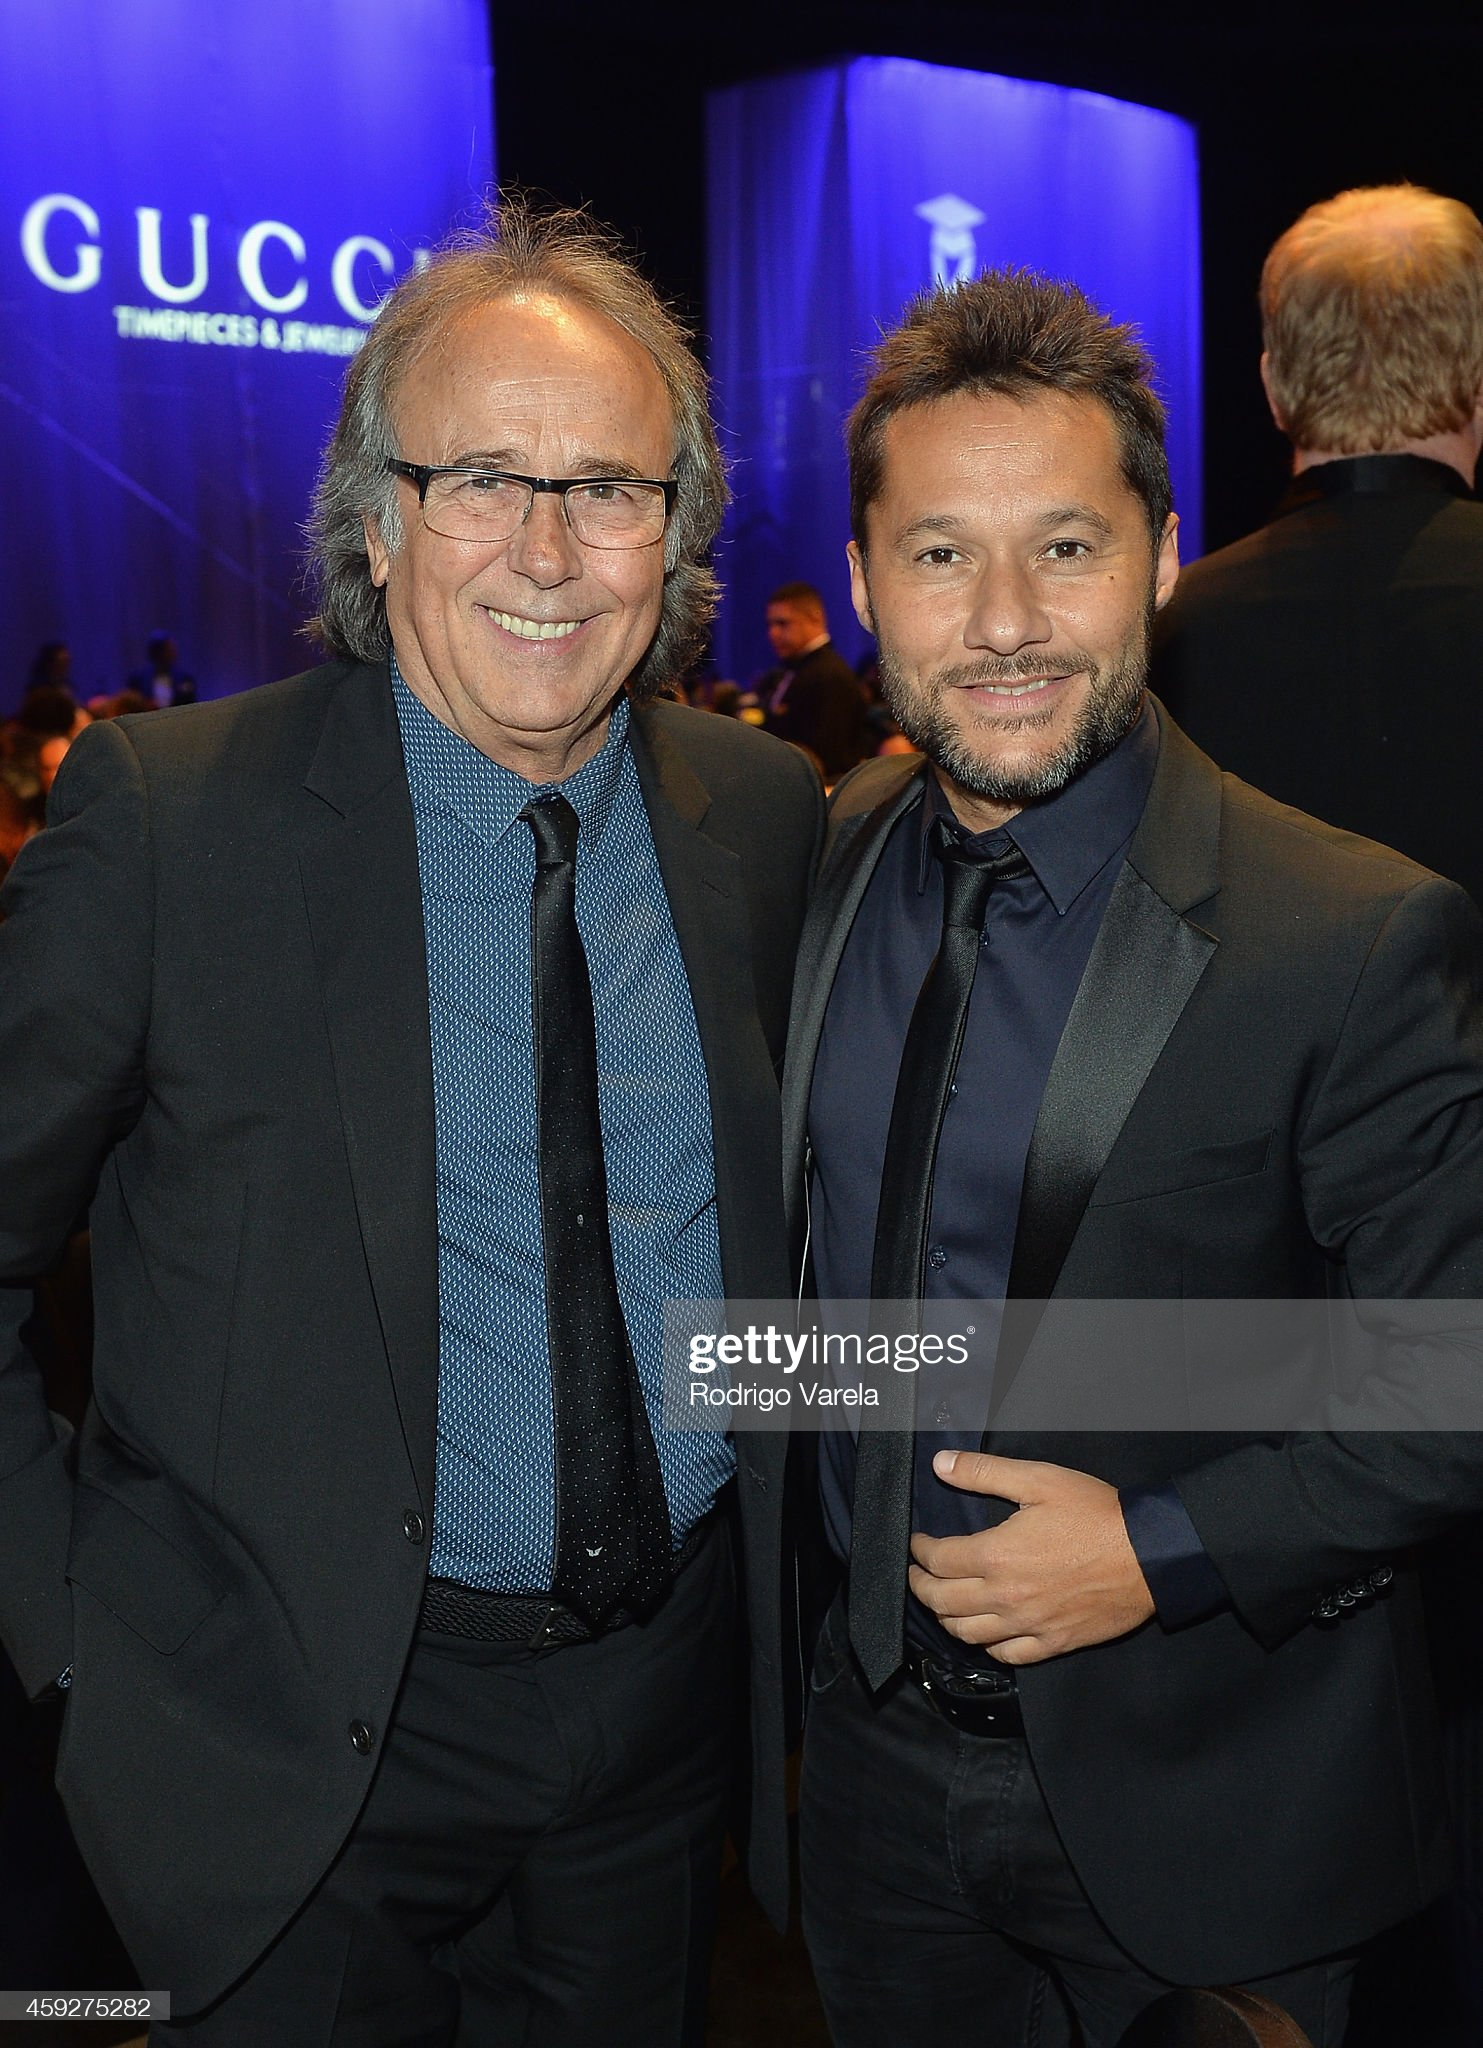 ¿Cuánto mide Diego Torres? - Altura Honoree-joan-manuel-serrat-and-recording-artist-diego-torres-attend-picture-id459275282?s=2048x2048